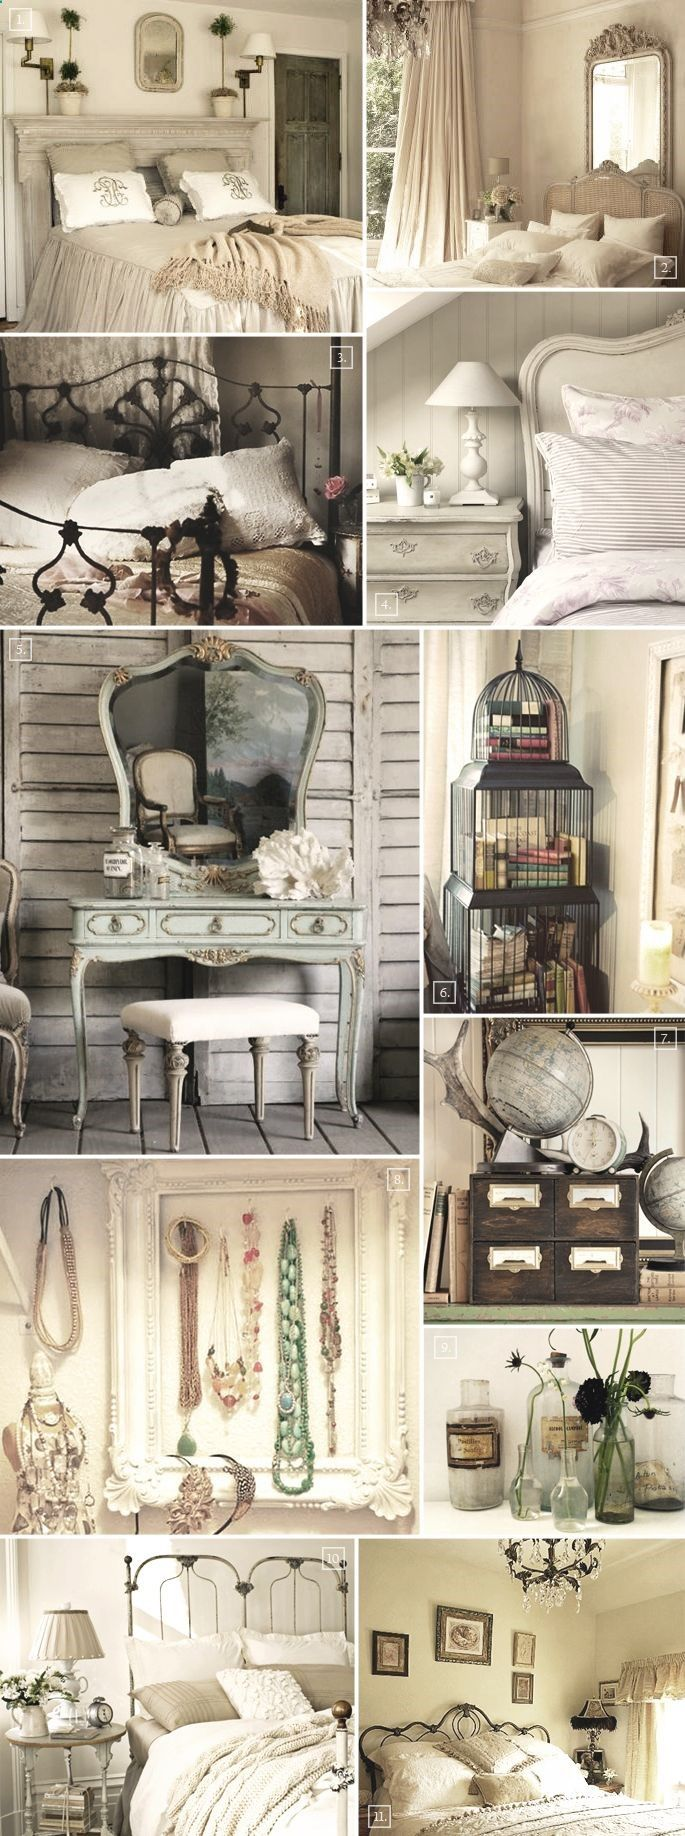 vintage little girls room reveal rooms for rent blog ...